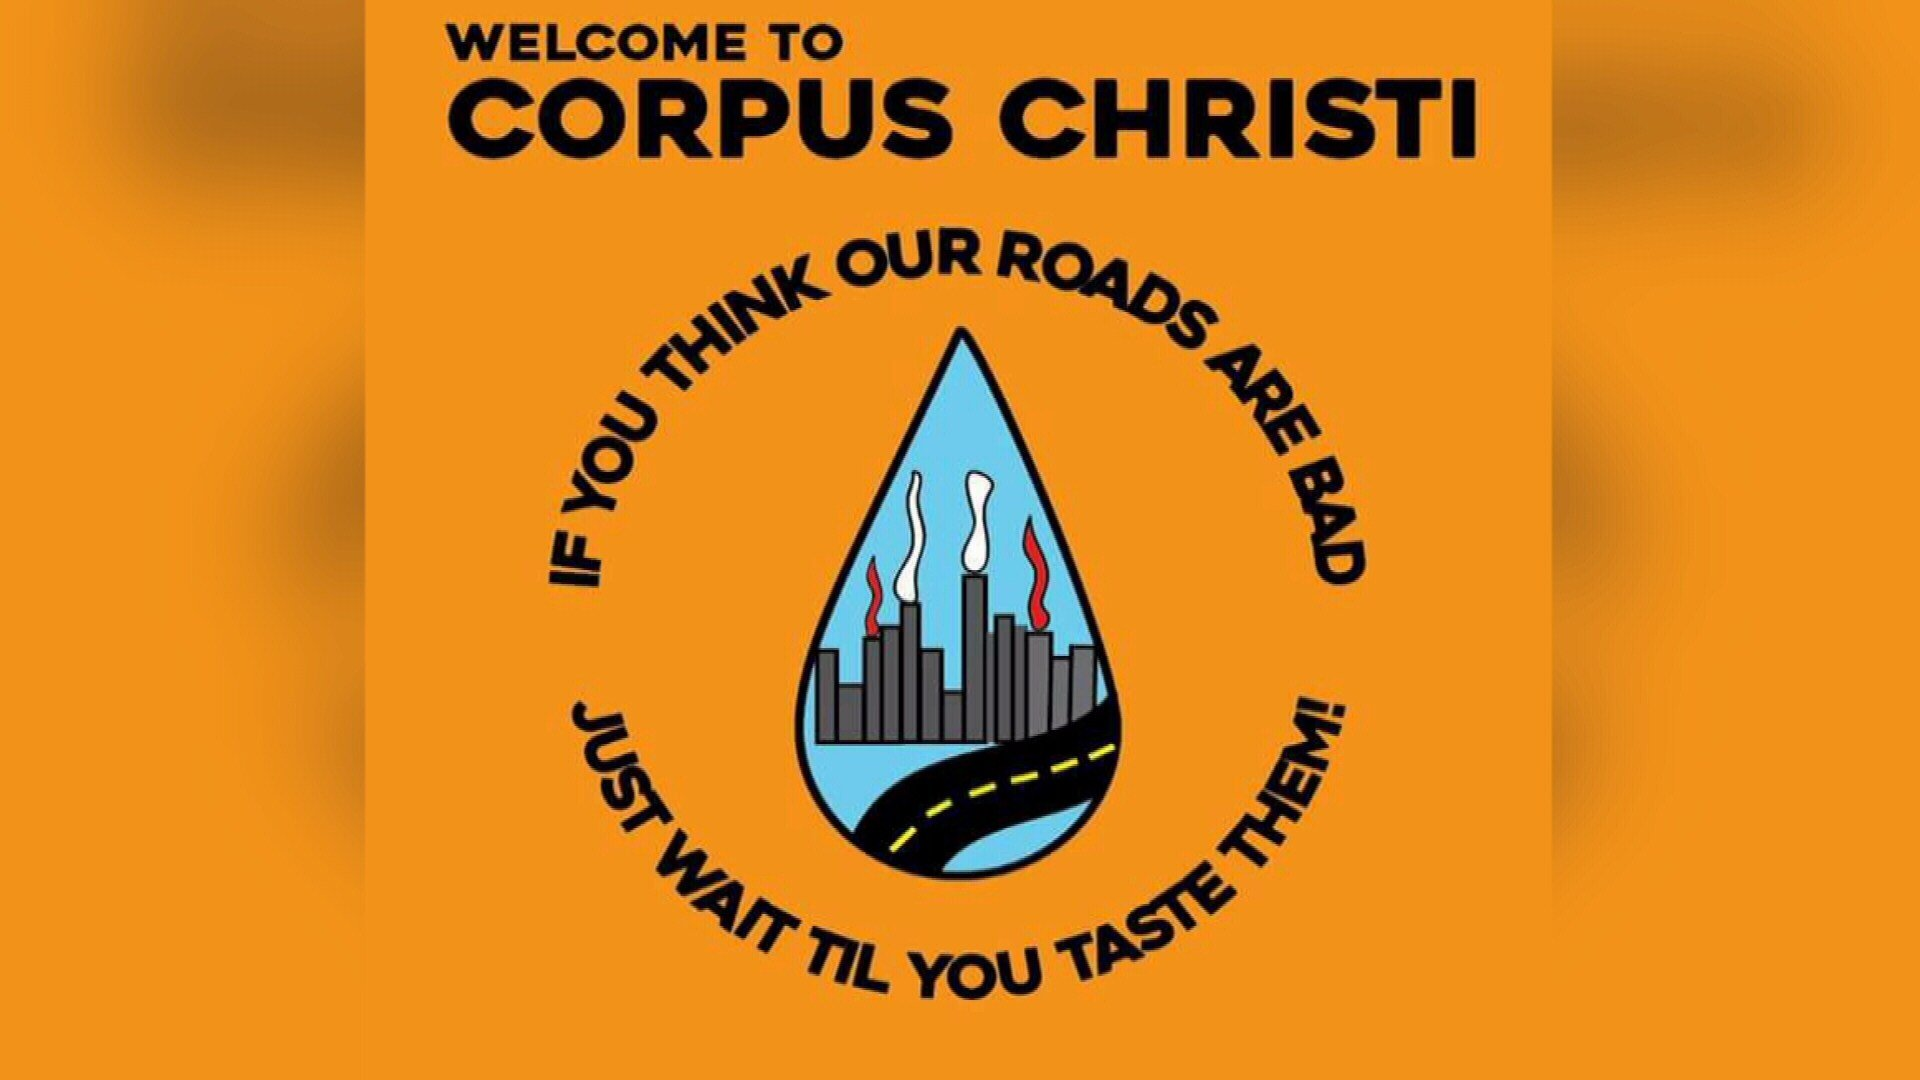 Corpus Christi has made national headlines for its water issues and dozens of negative memes about the city are circulating online.